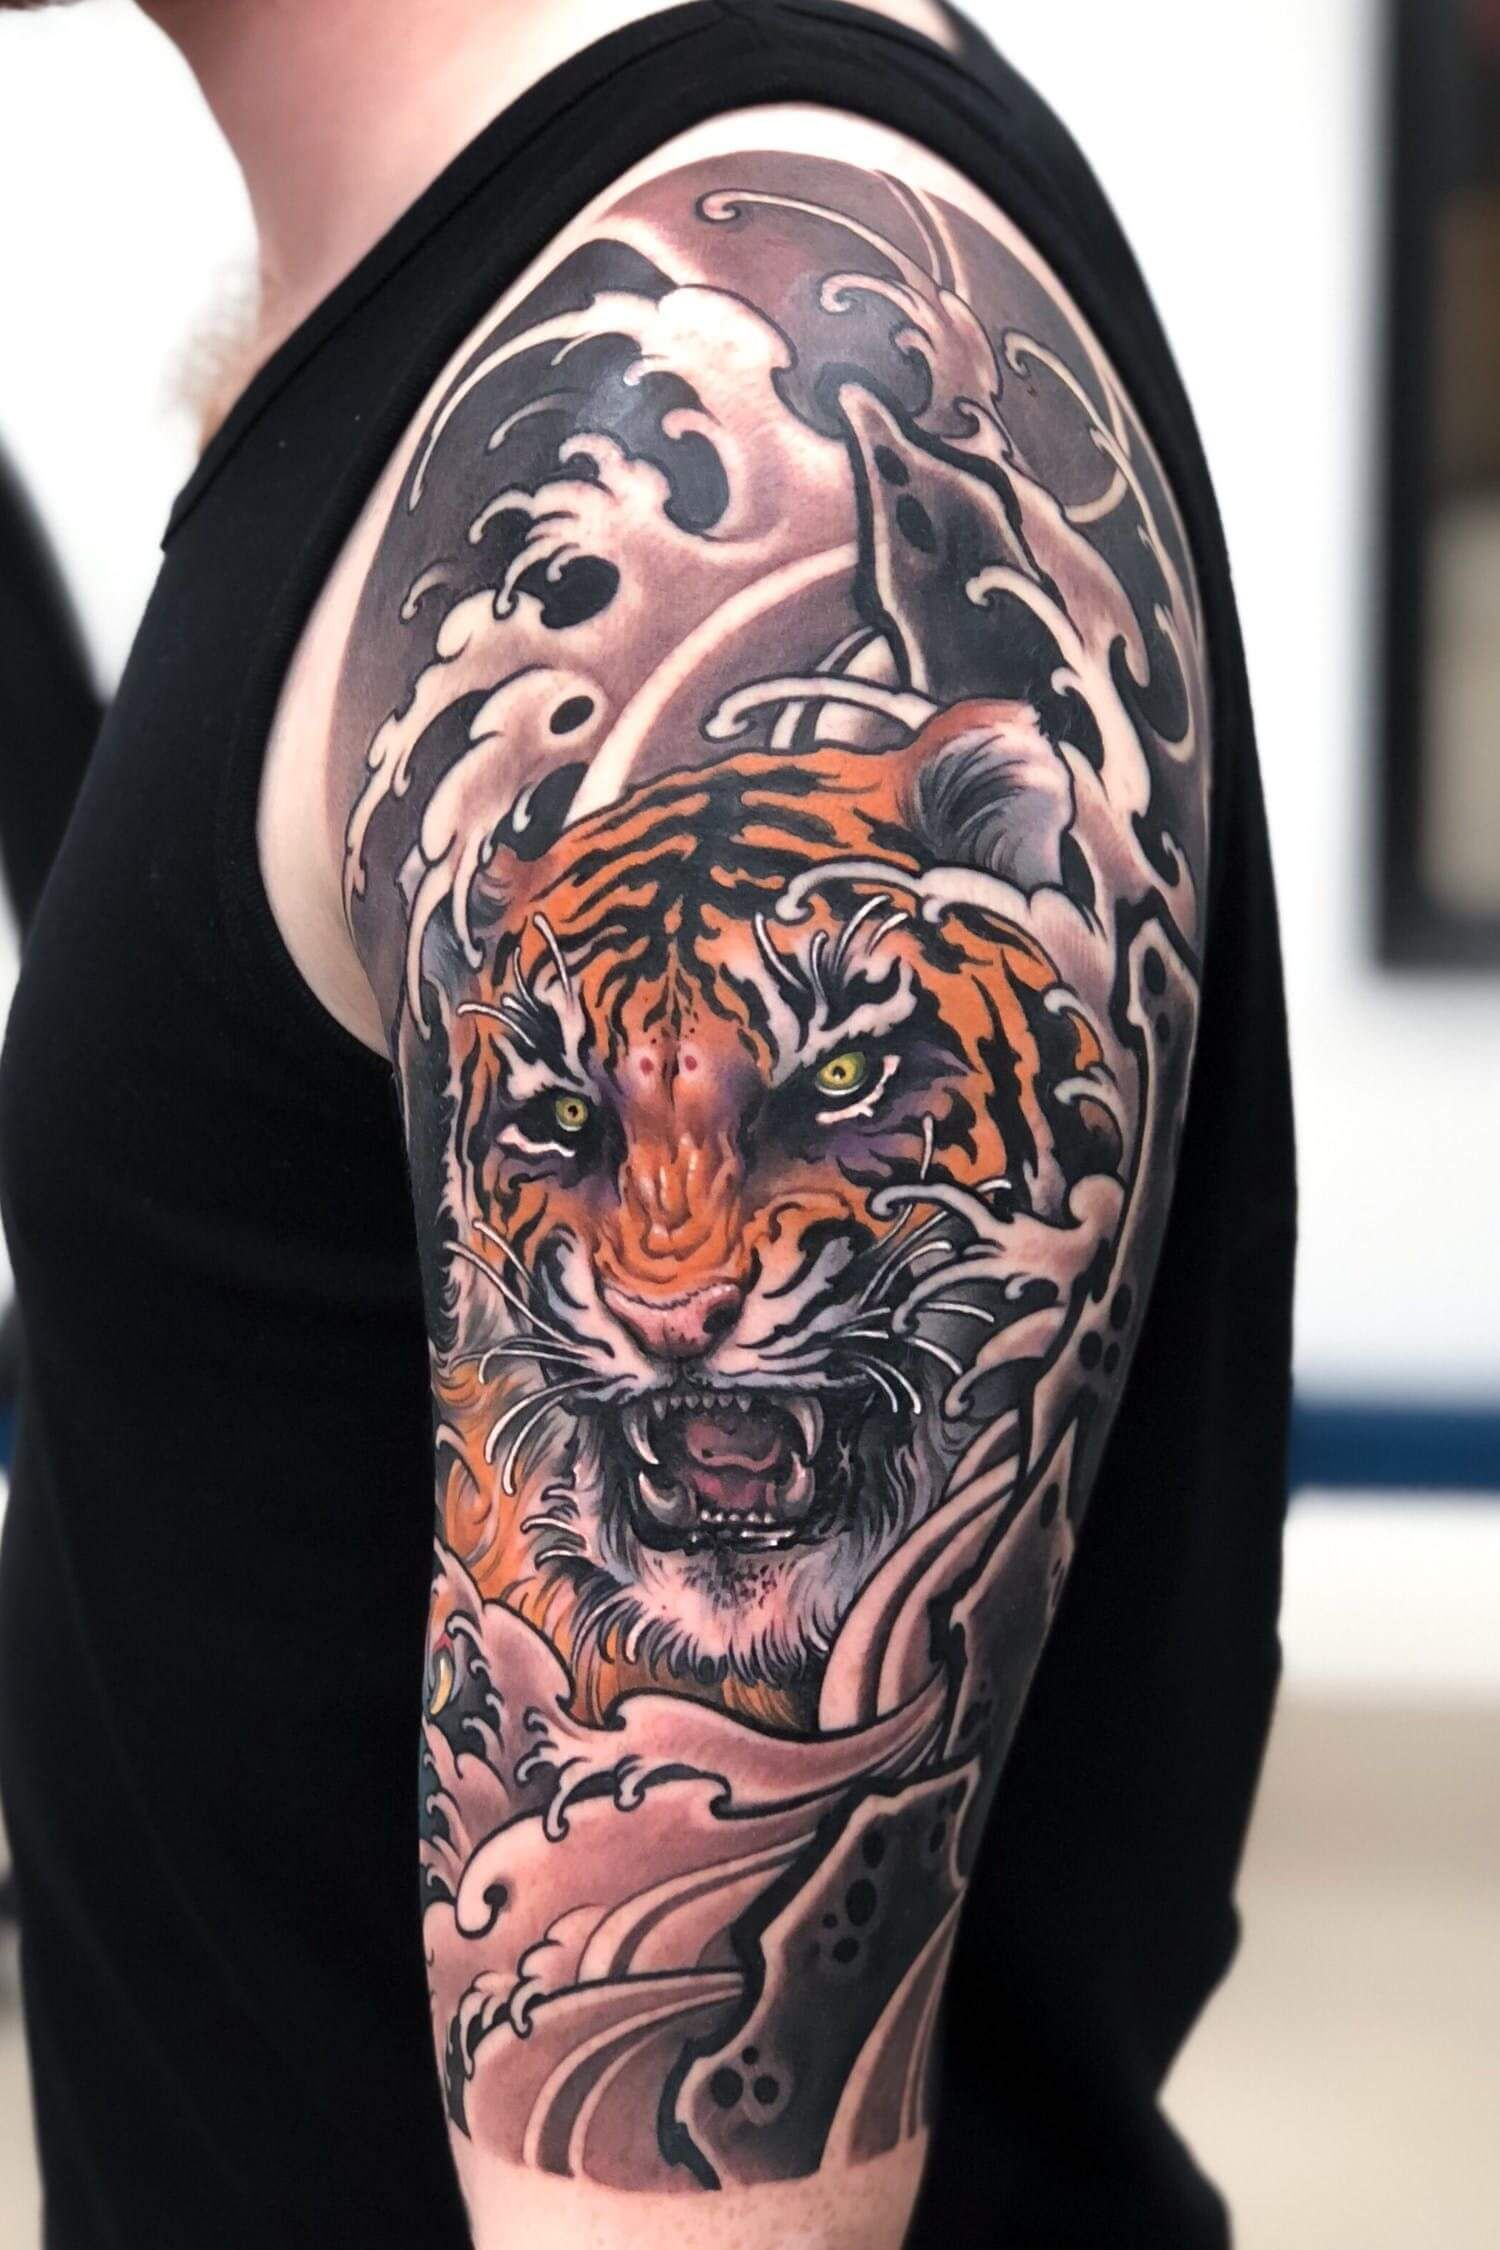 15+ Best Japanese Tiger Tattoo Designs and Ideas